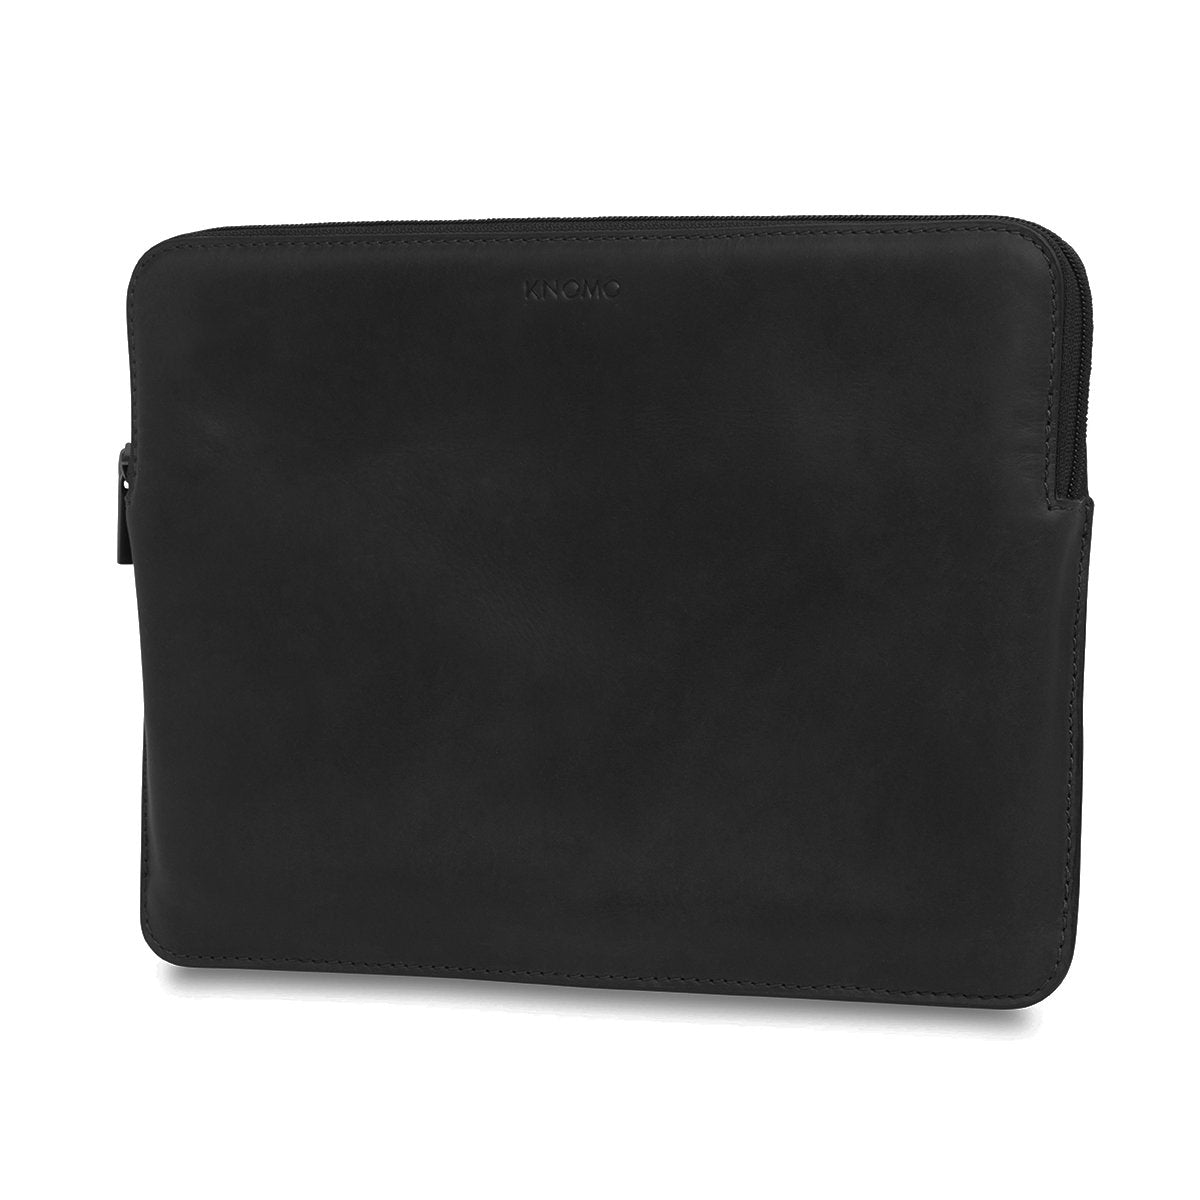 "Leather Laptop Sleeve - 12"" Leather Laptop Sleeve - 12"" -  12"" 